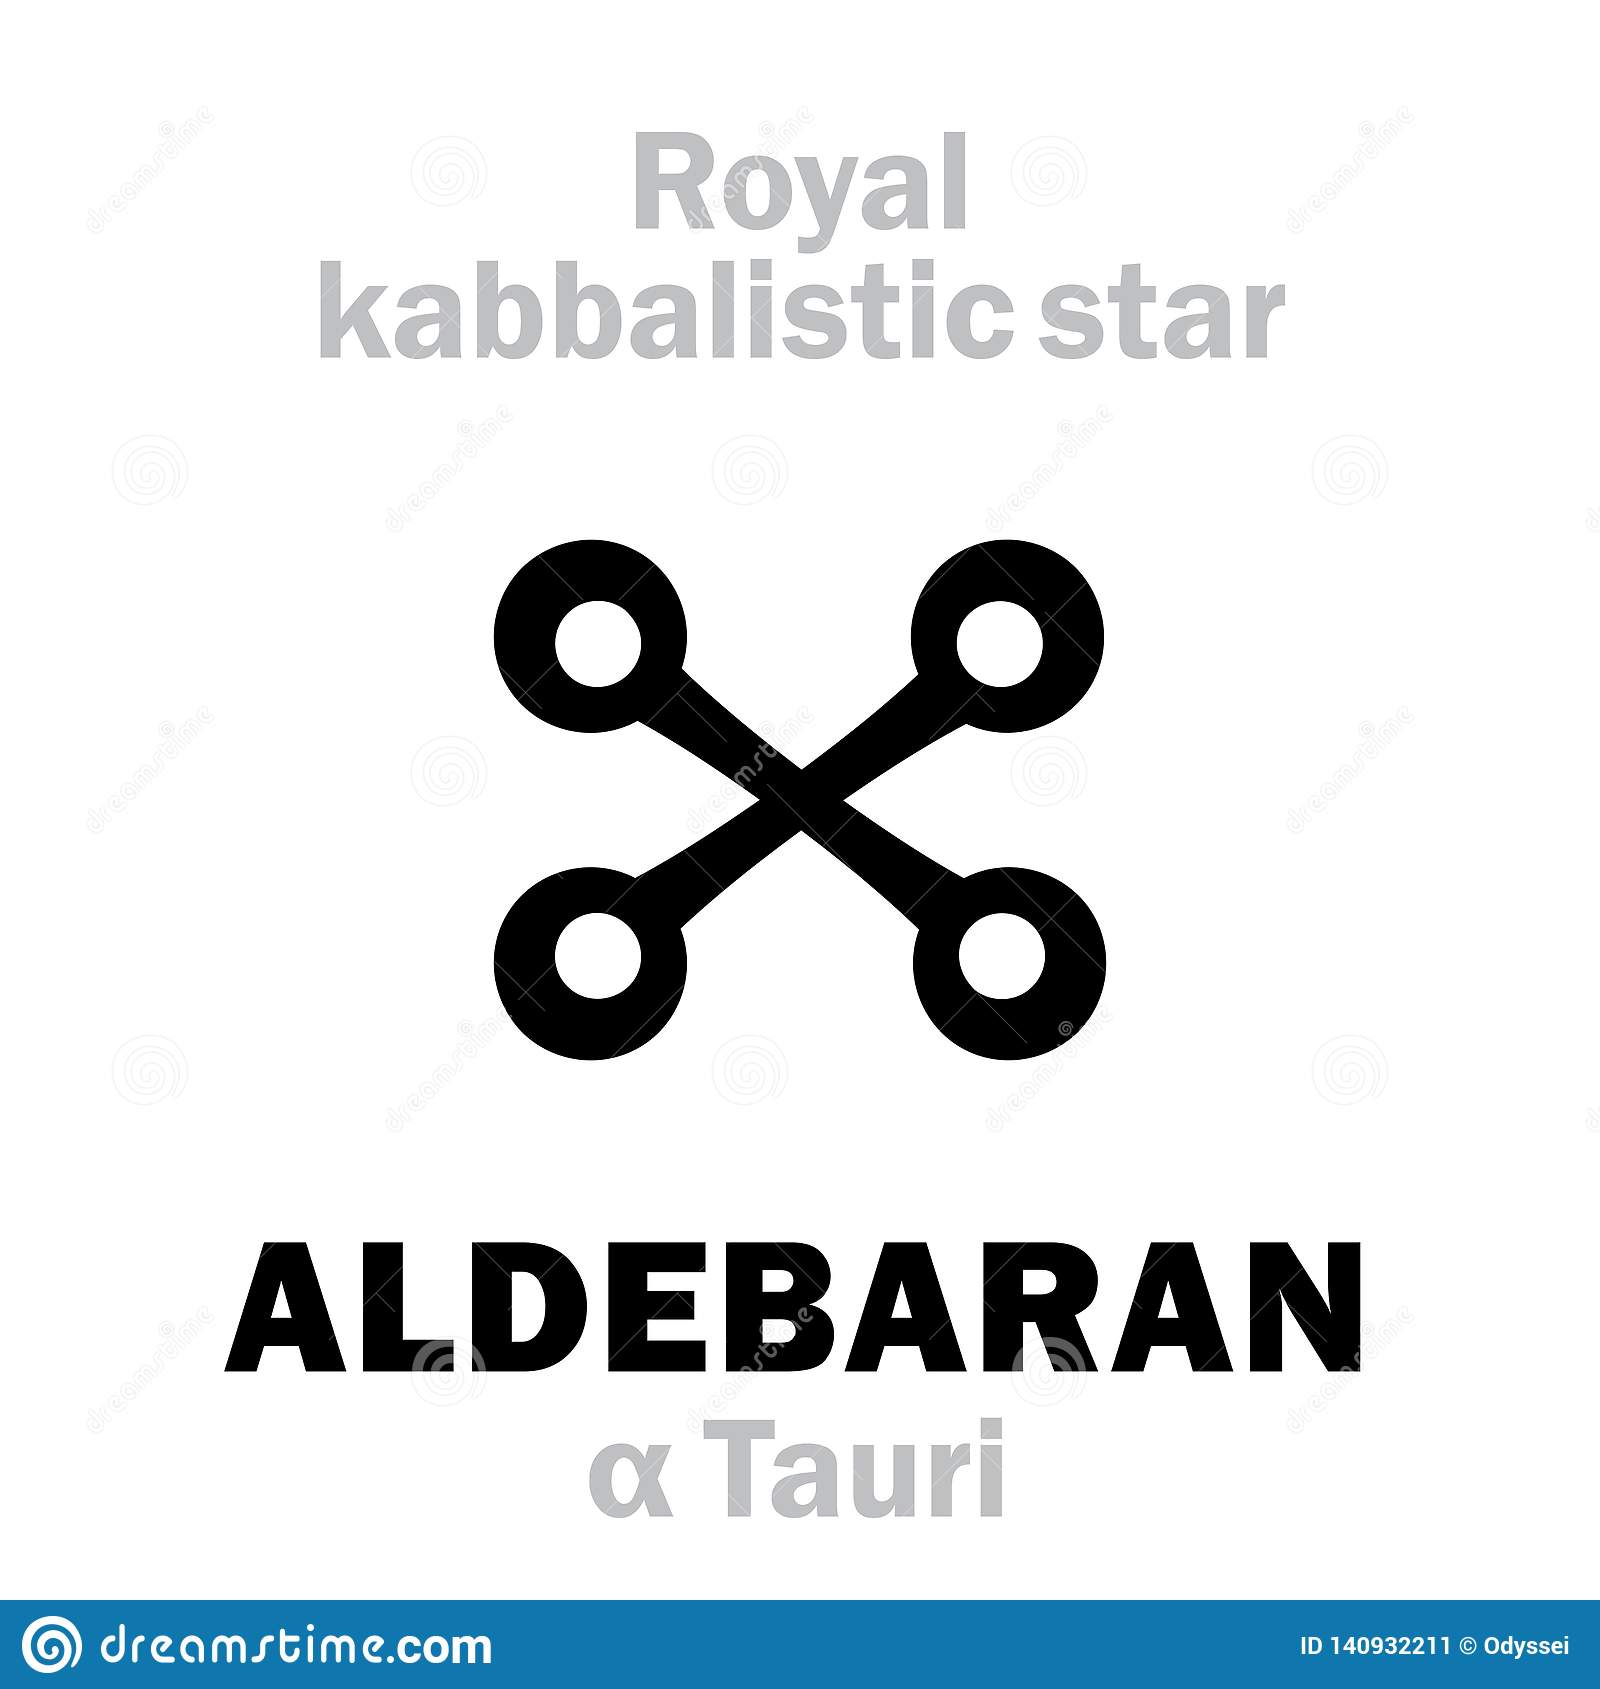 Astrology: ALDEBARAN (The Royal Behenian Kabbalistic Star